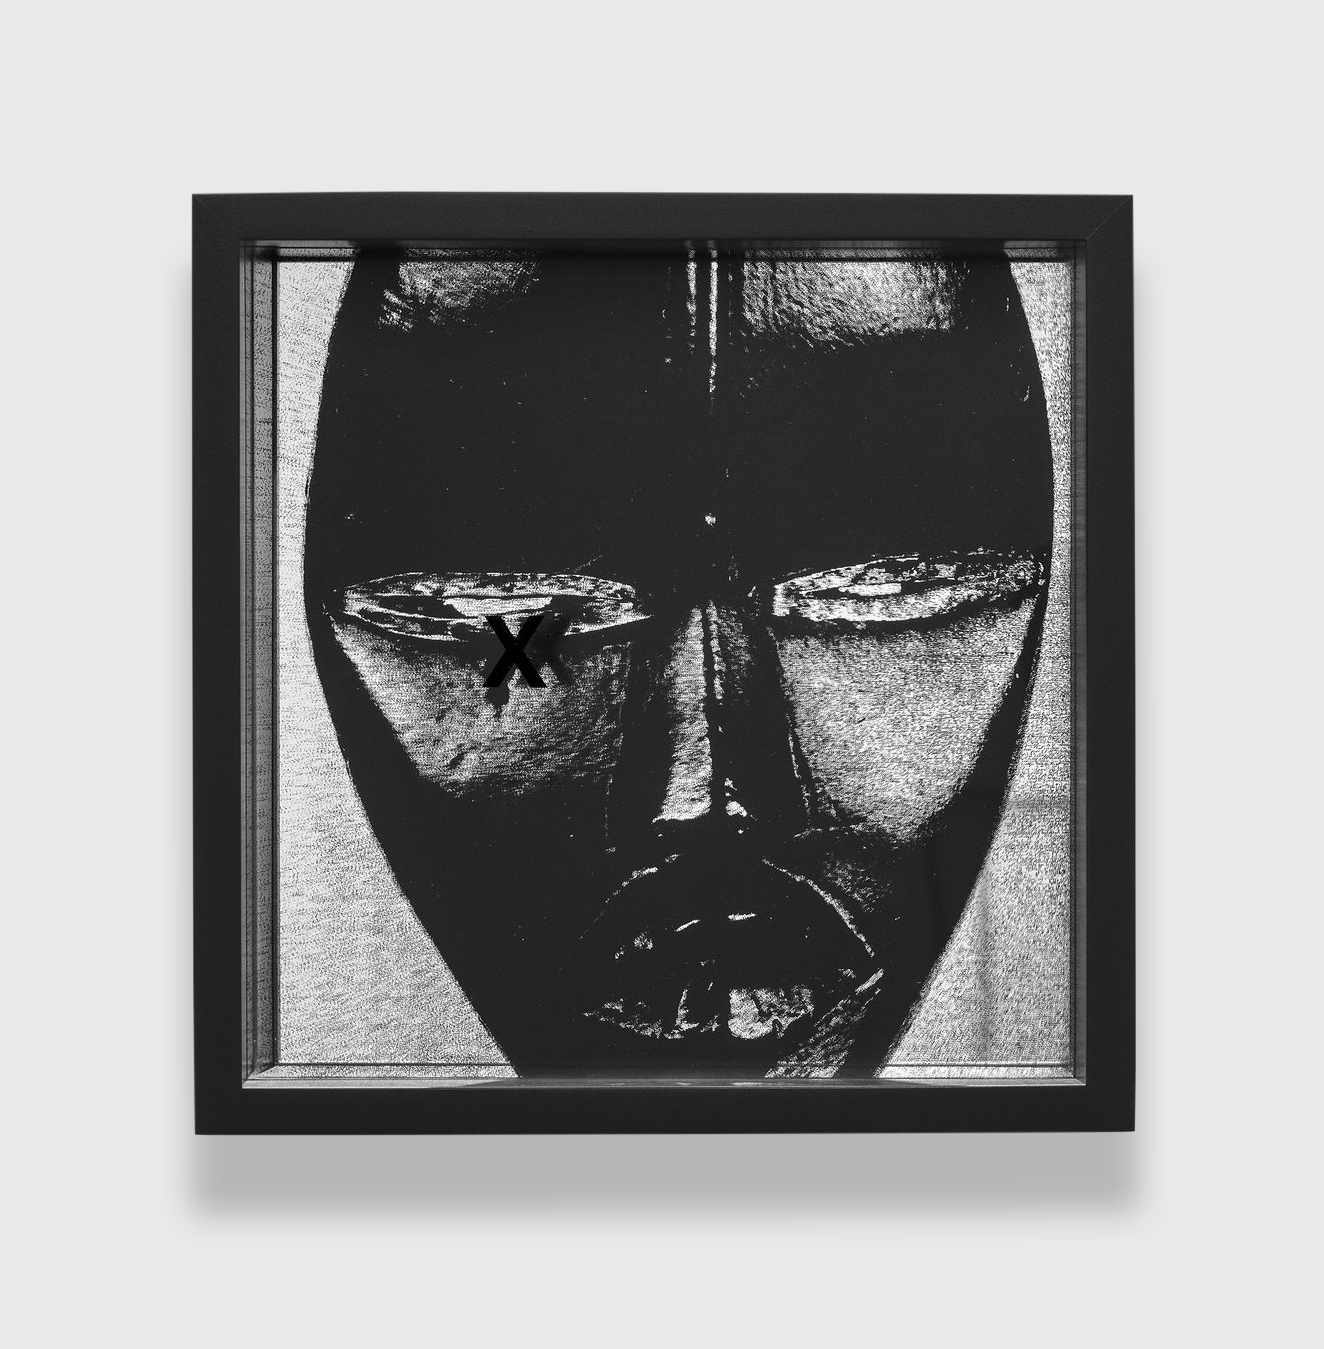 Adam Pendleton  System of Display, X (EXPRESS/Poro secret society mask, Mano, Liberia)  2016 Silkscreen ink on plexiglass and mirror 9 13/16h x 9 13/16w x 3 1/8d in